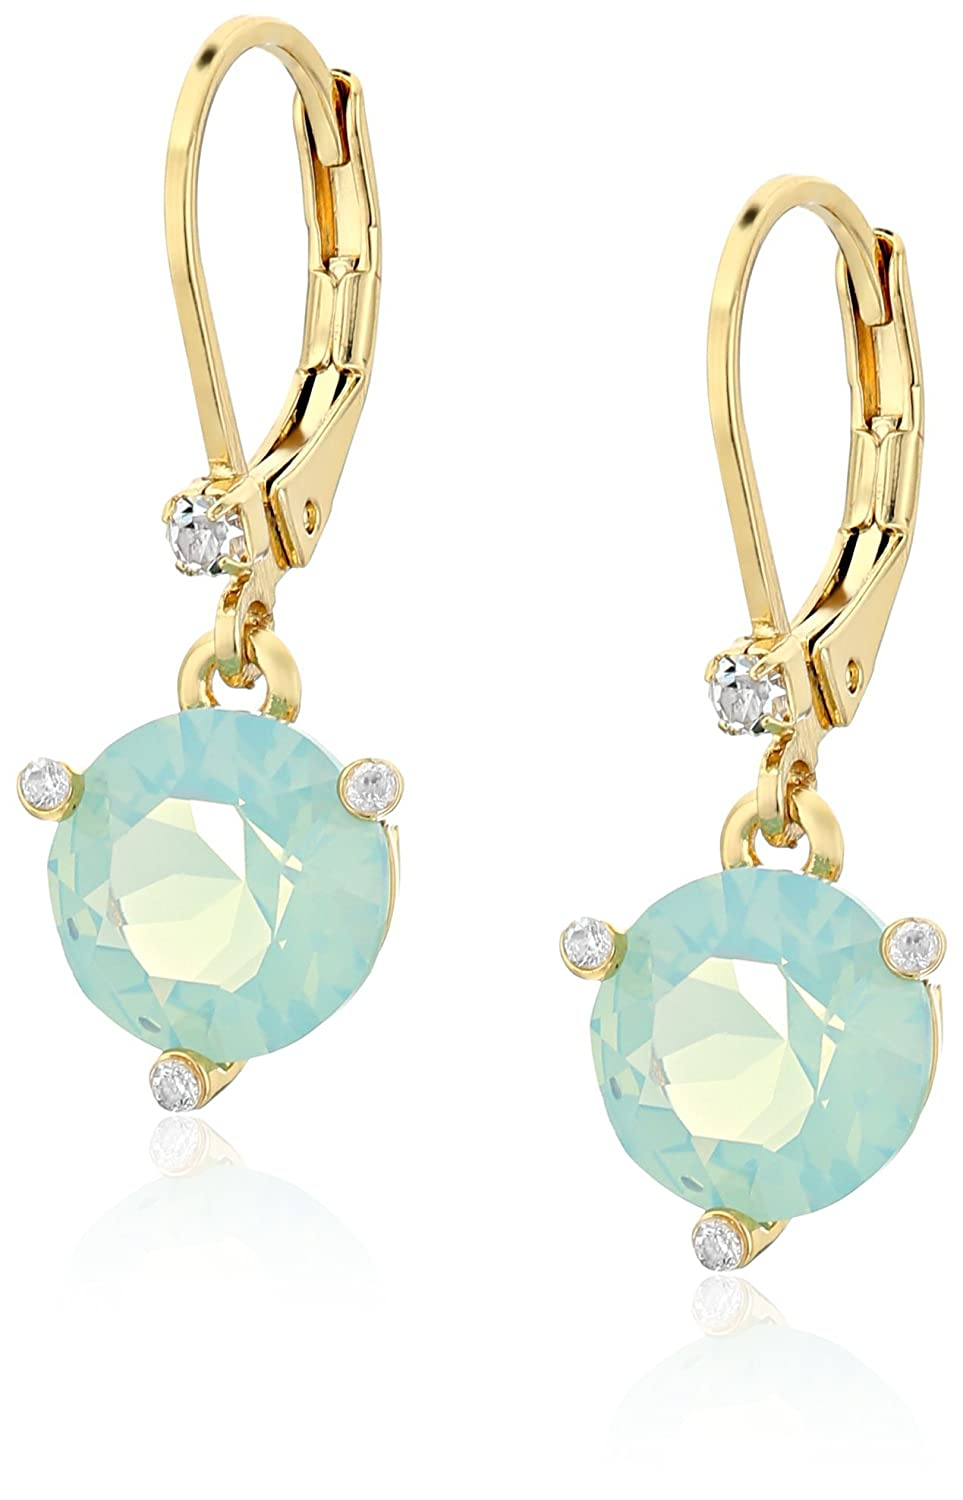 kate spade new york Leverbacks Earrings kate spade jewelry WBRUC024170